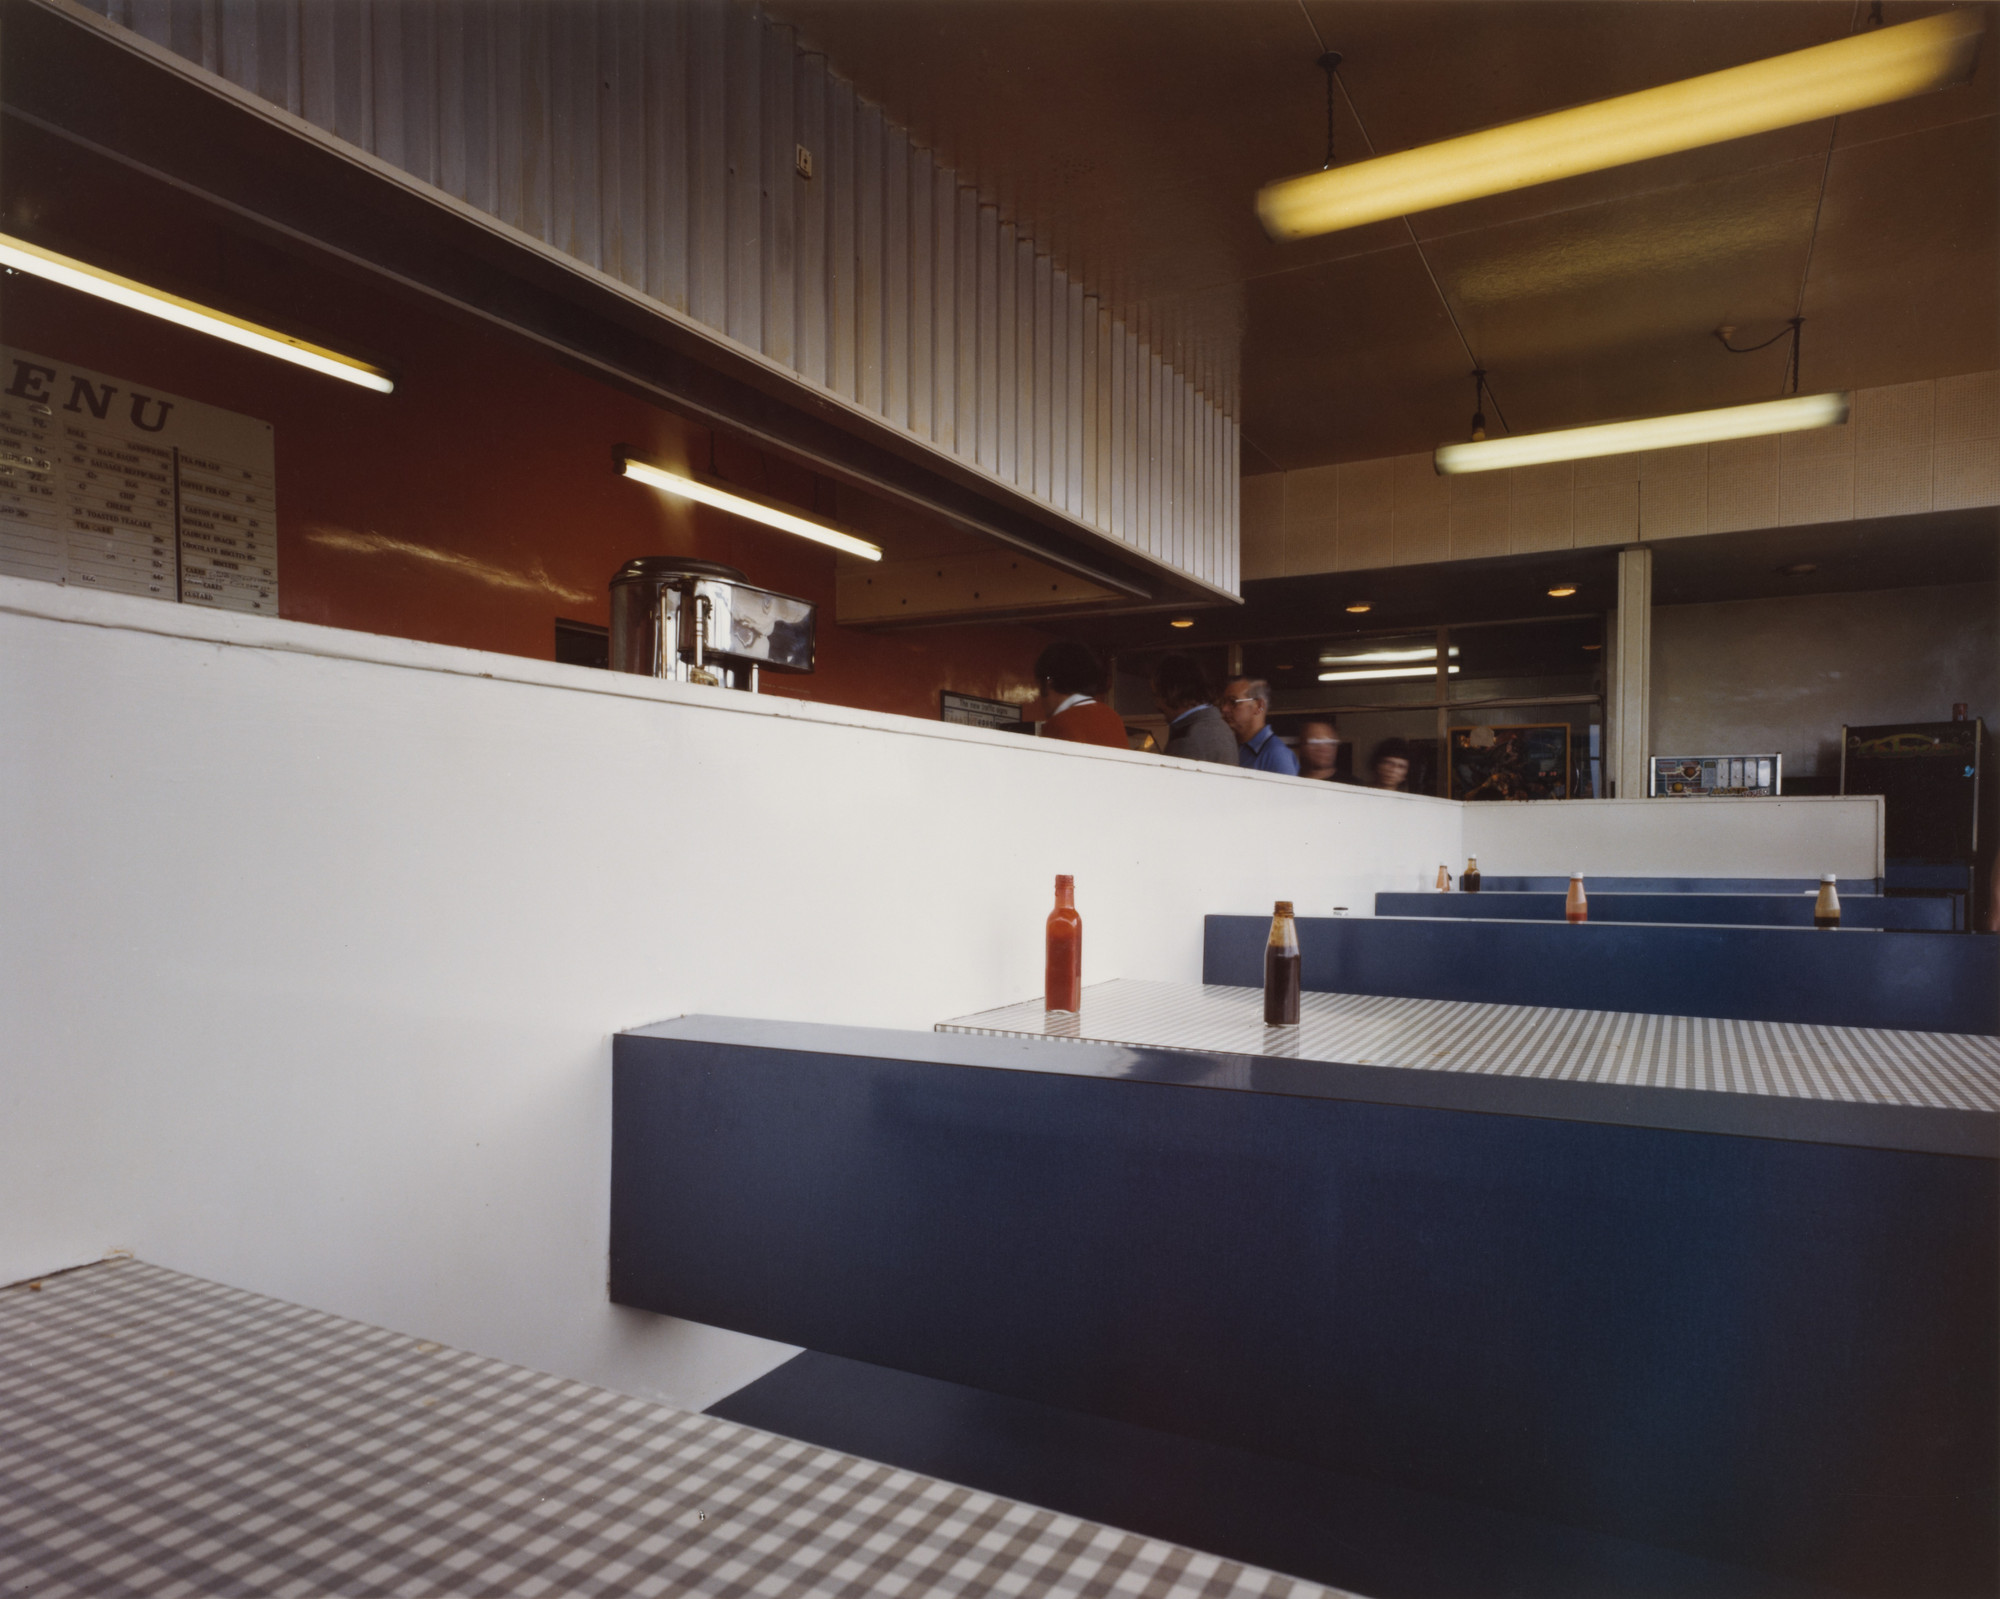 Paul Graham. Interior, Blyth Services, Blyth, Nottinghamshire from the portfolio A1: The Great North Road. June 1981